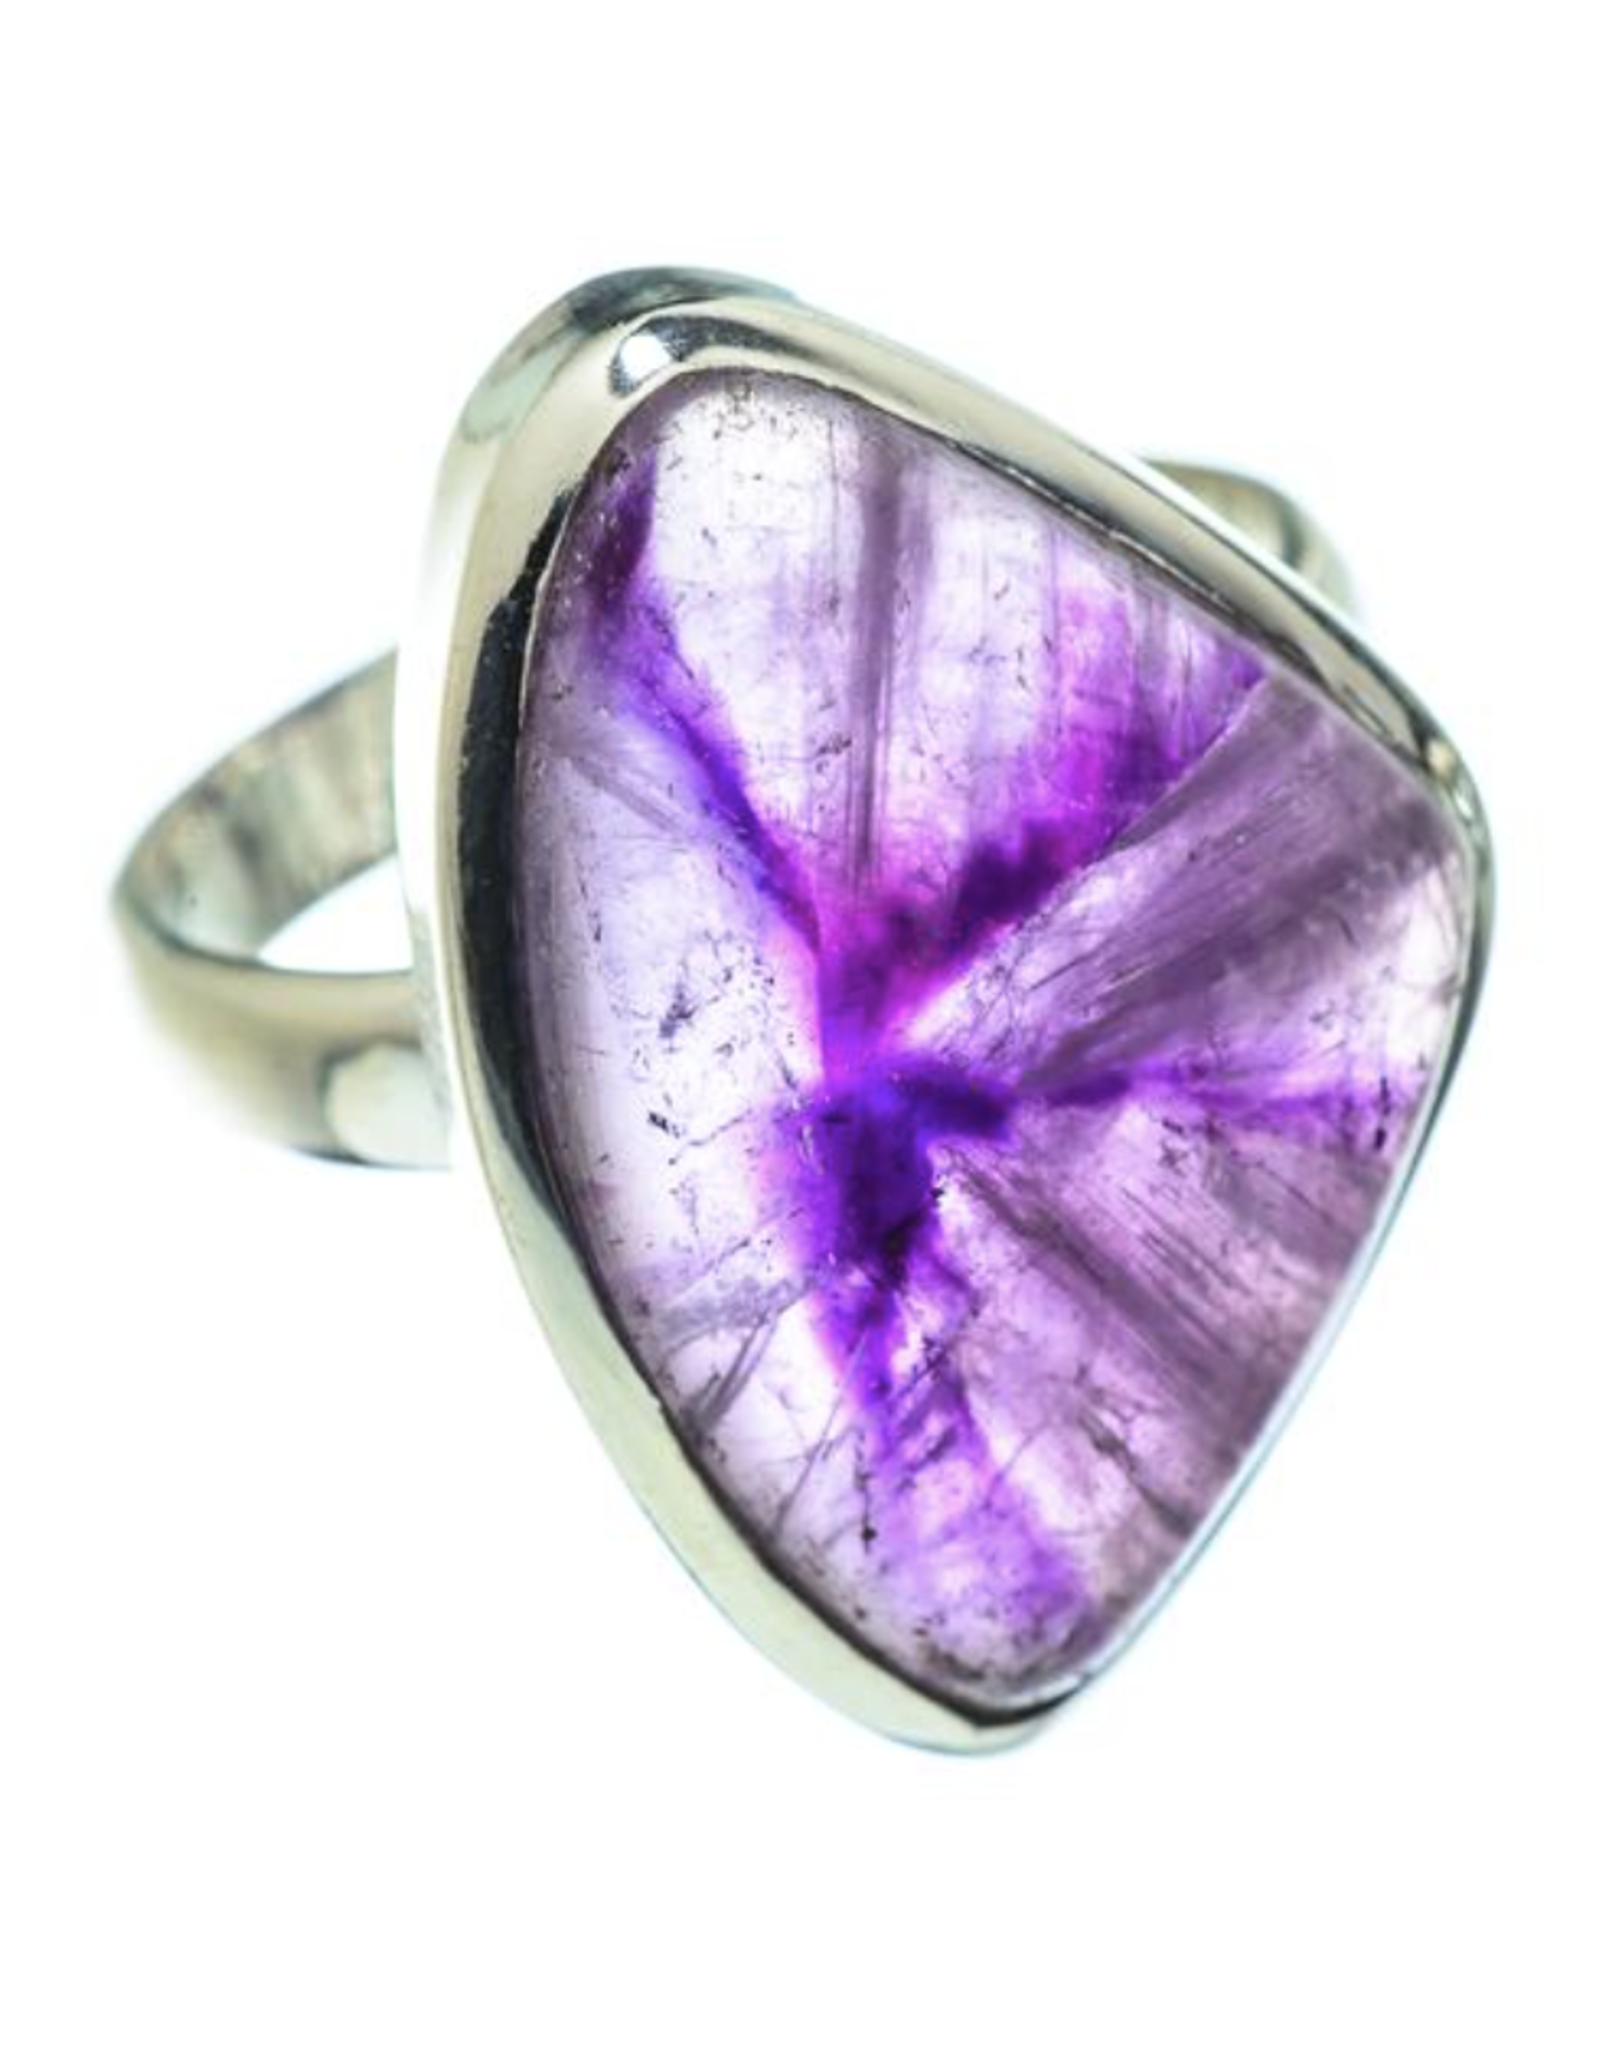 Chevron Amethyst Ring - Size 8.25